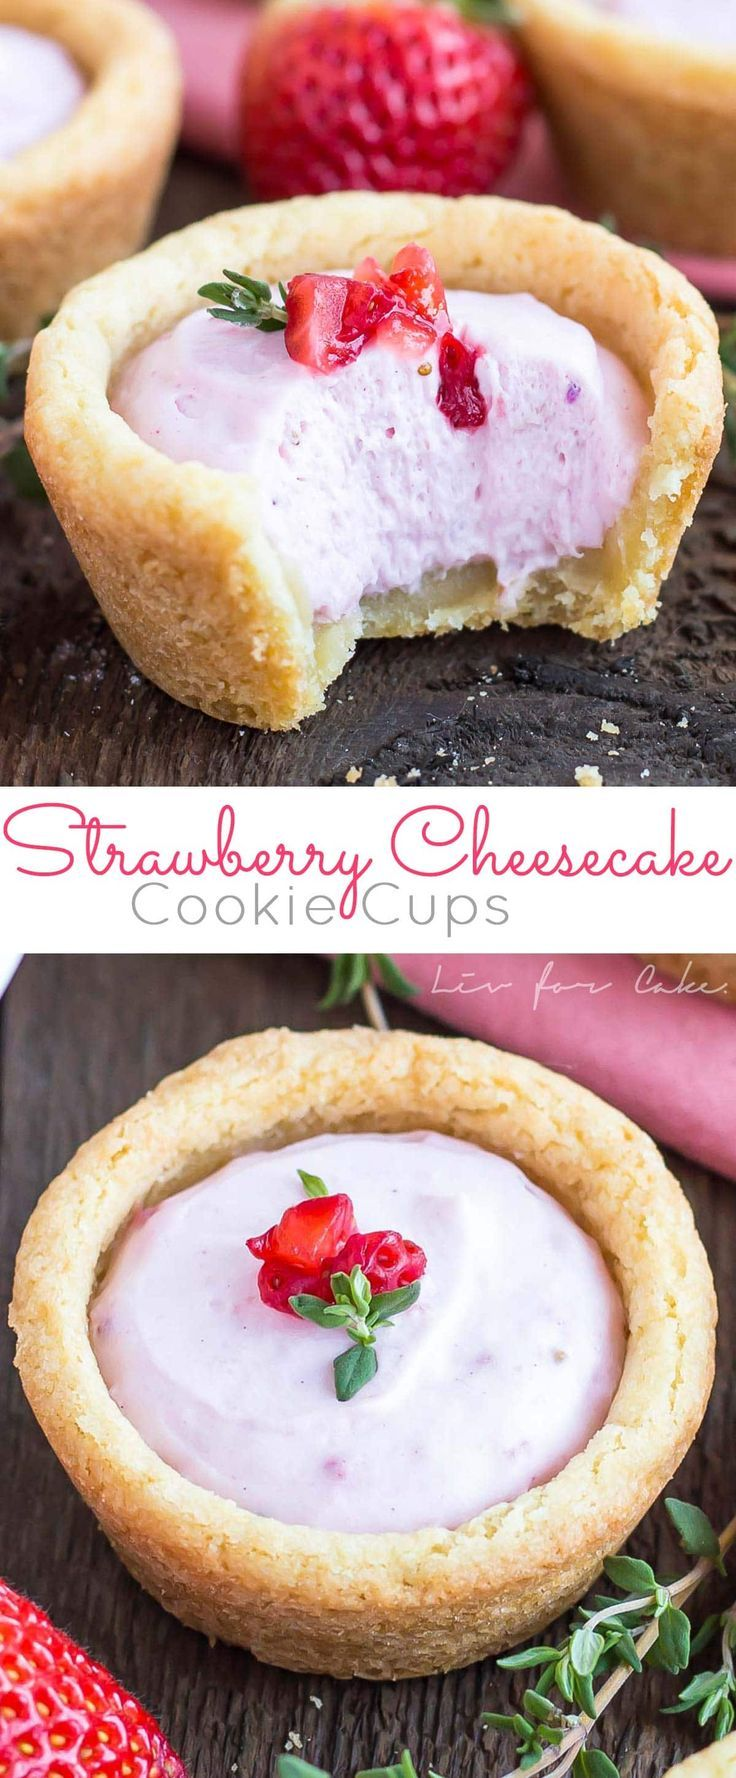 These Strawberry Cheesecake Cookie Cups are the perfect pairing of fruity cheesecake and chewy sugar cookies.   http://livforcake.com